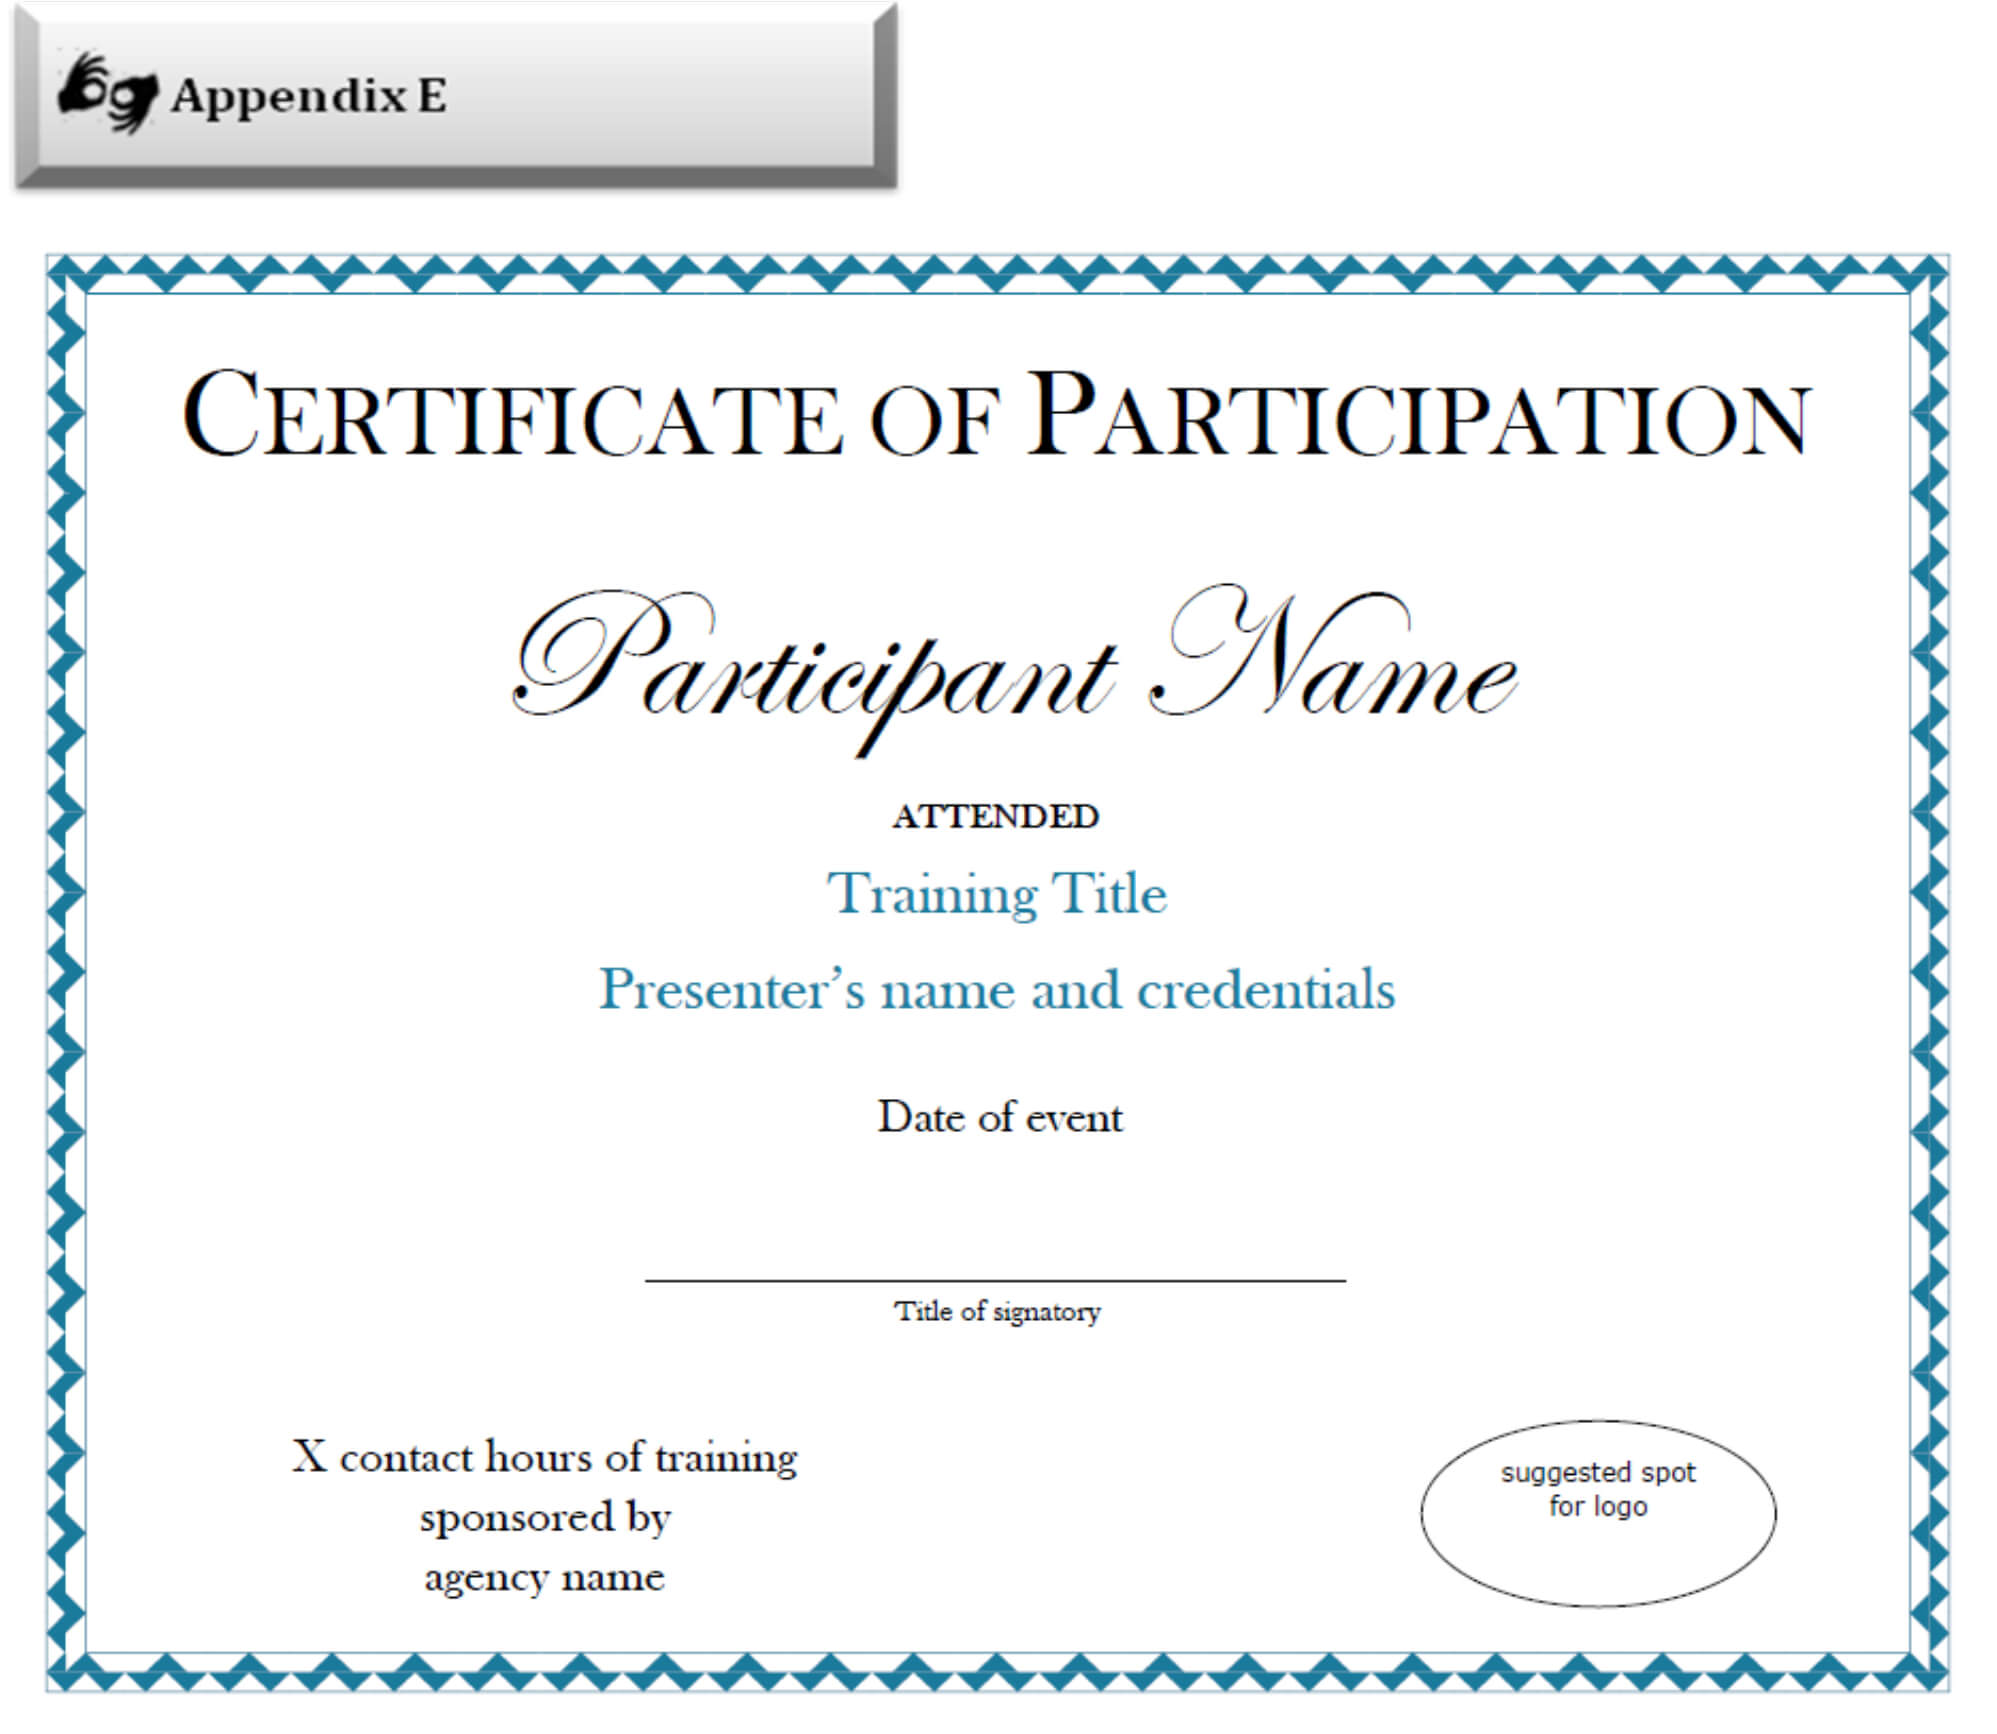 Certificate Of Participation Sample Free Download With Regard To Certificate Of Participation Template Pdf